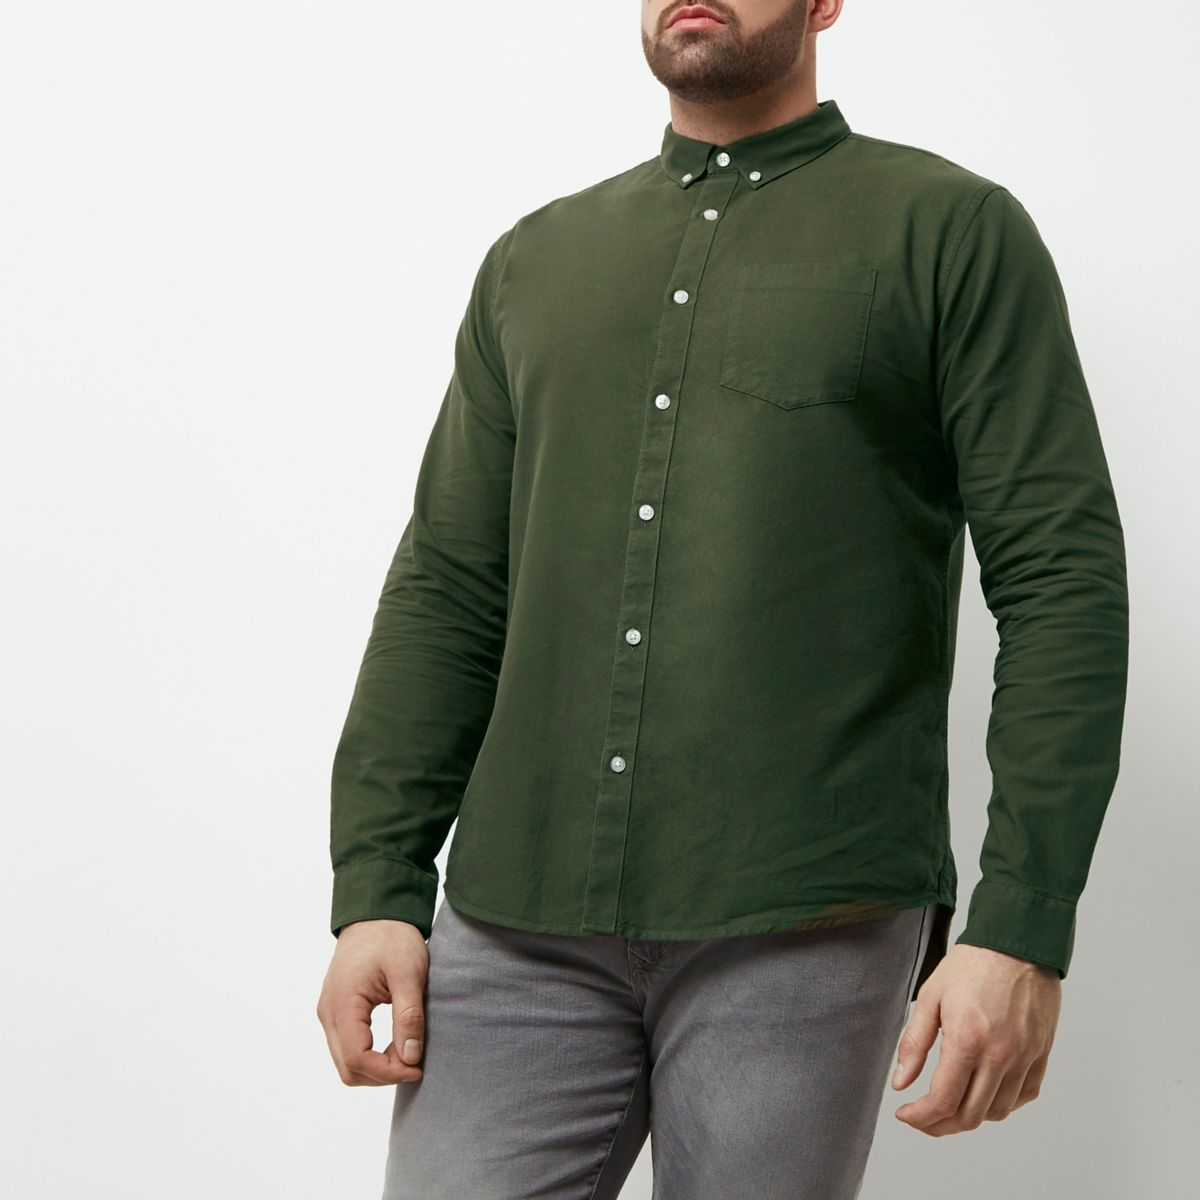 Big and Tall khaki green Oxford shirt